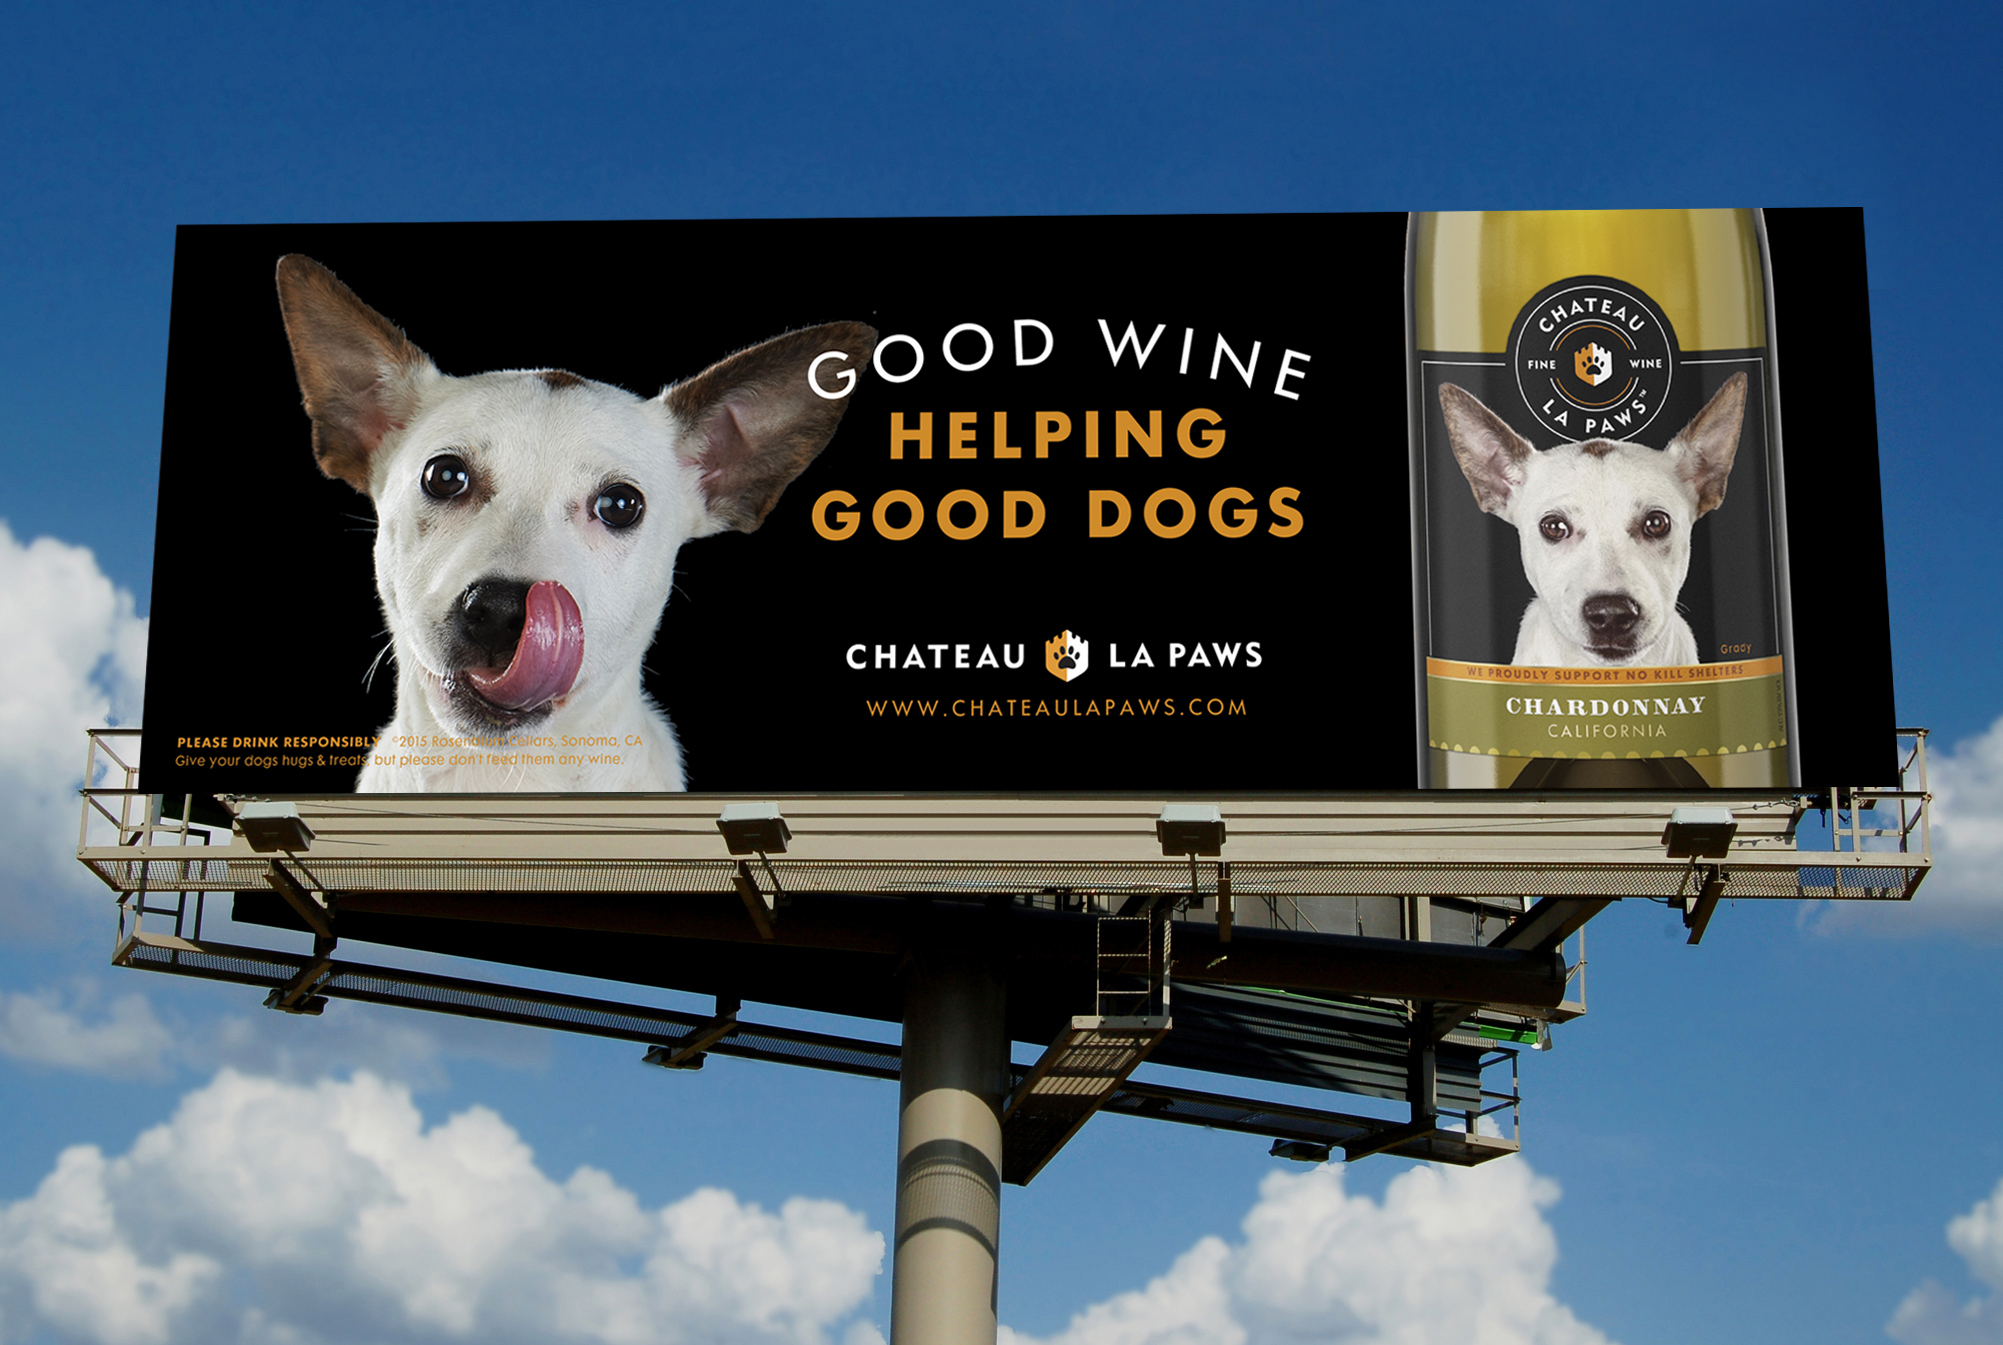 Chateau La Paws brand identity design, outdoor advertising, billboard, dog photography